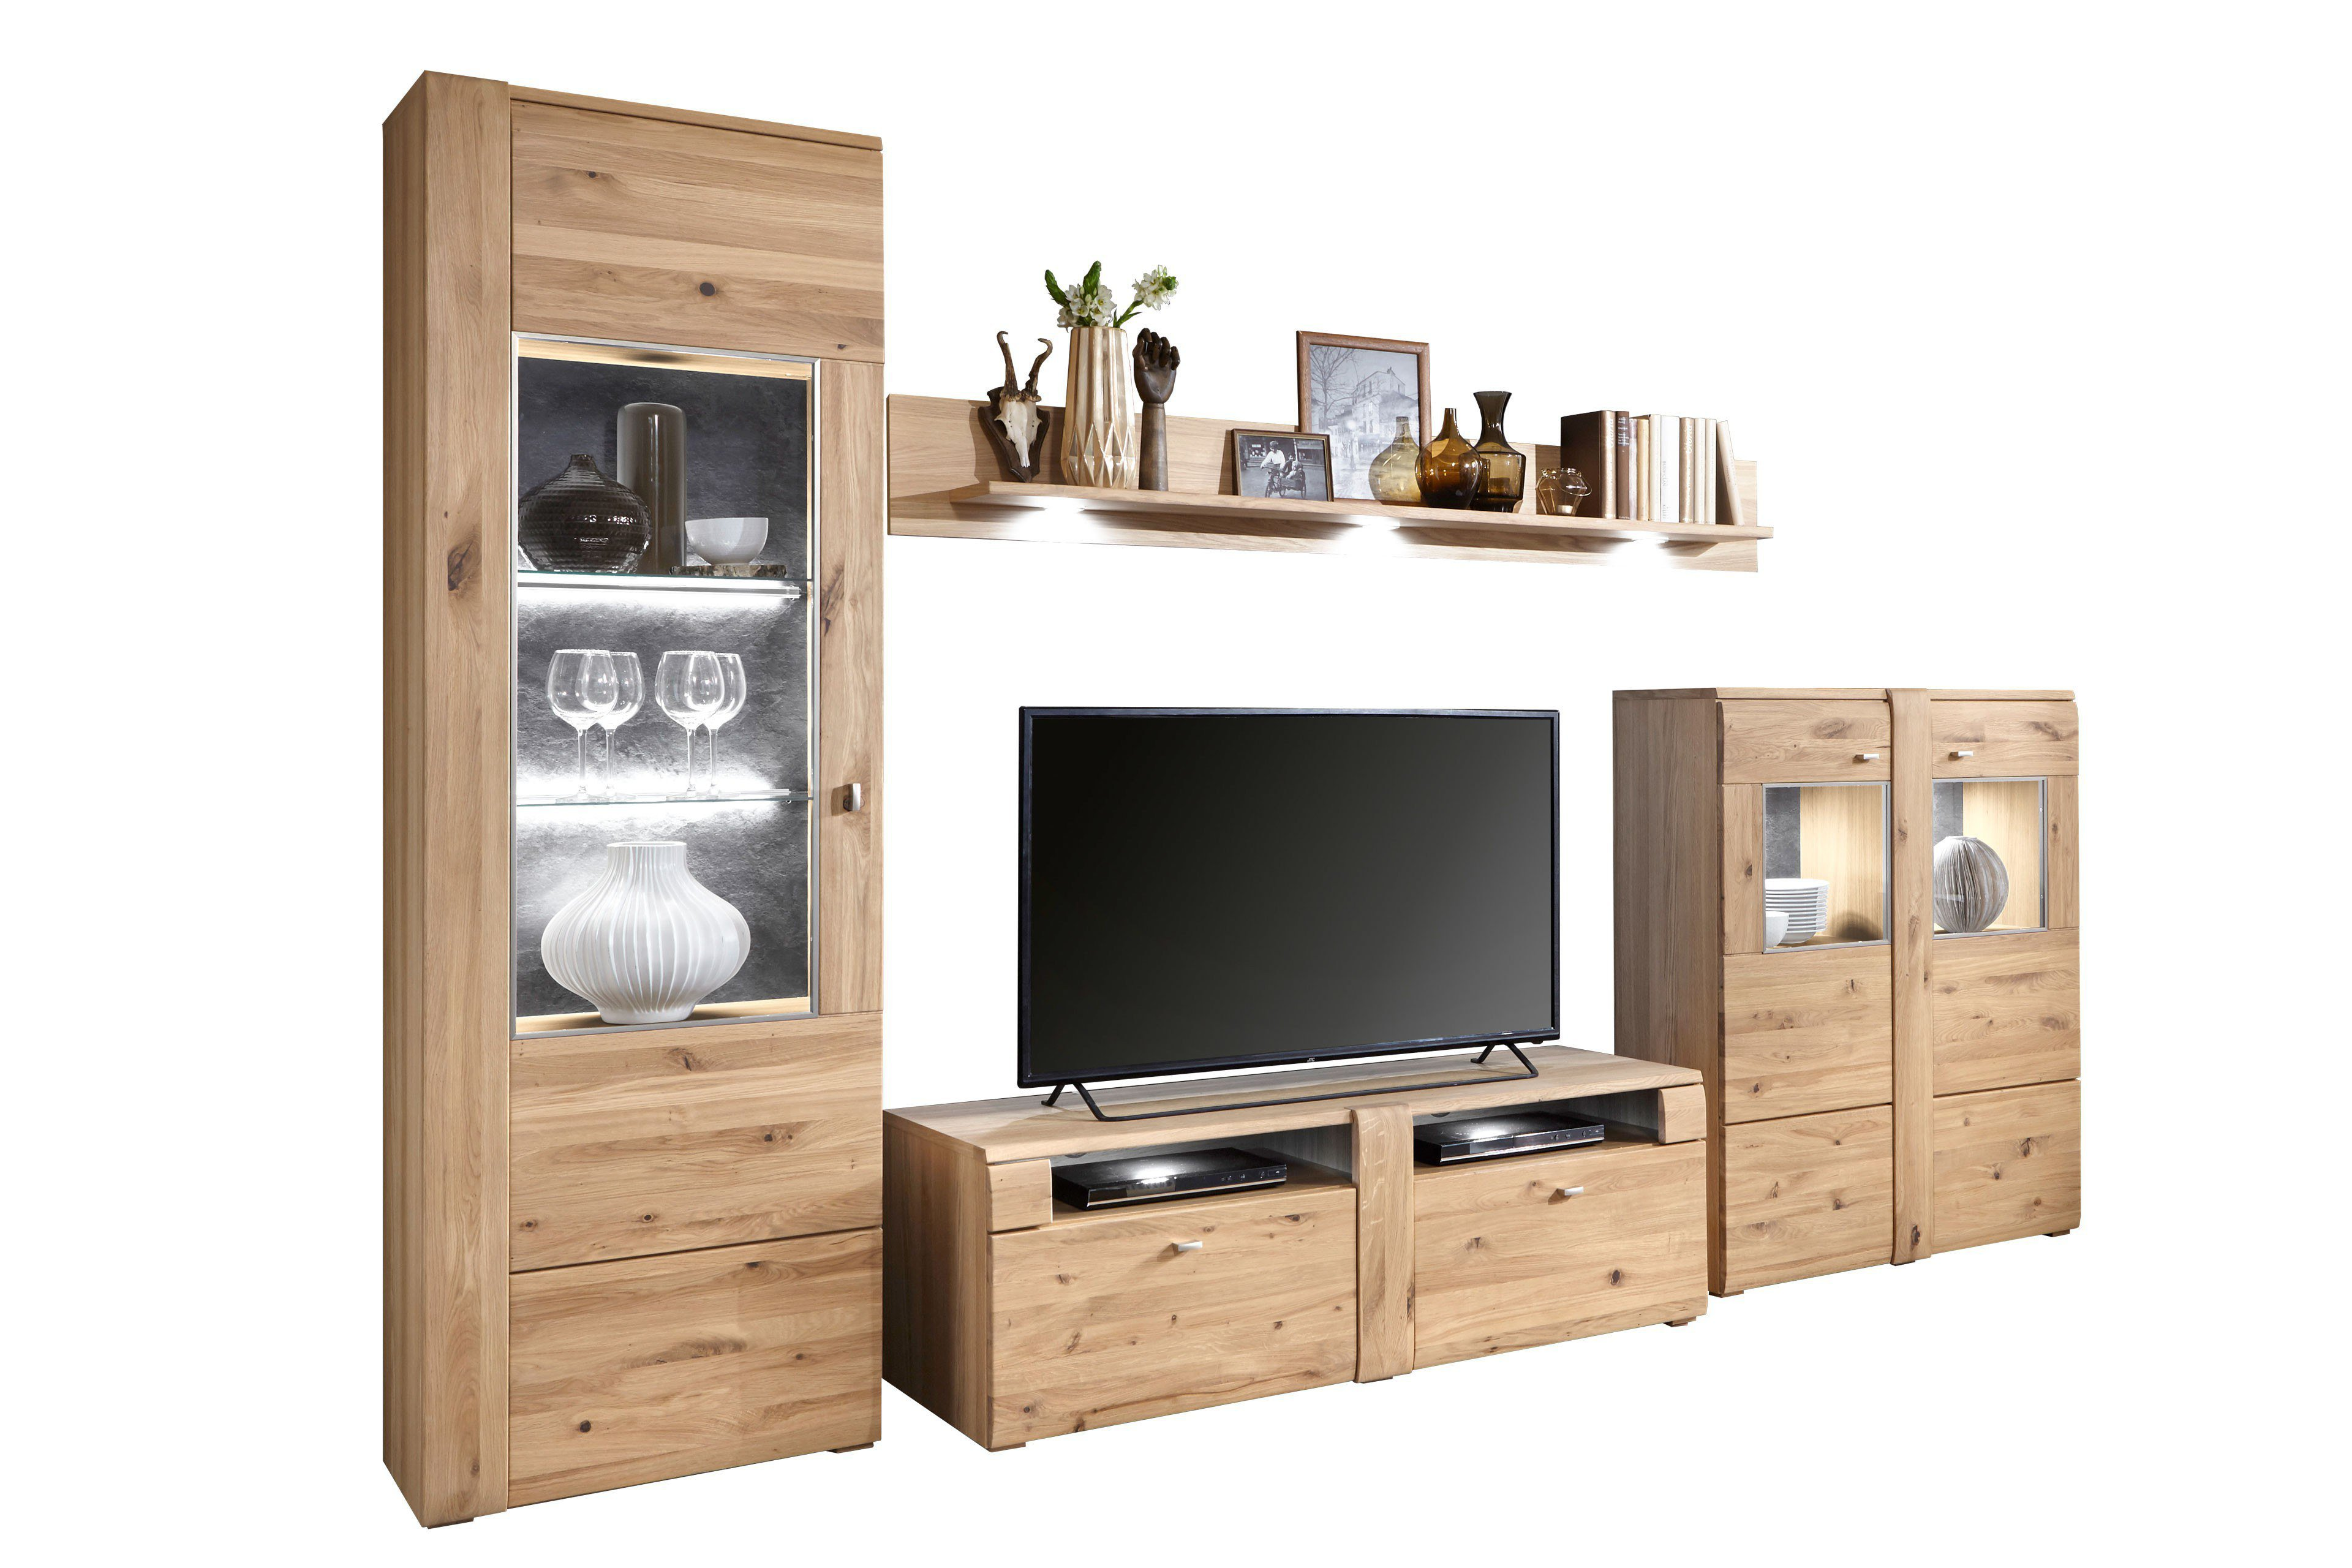 ideal m bel wohnwand arras alteiche m bel letz ihr online shop. Black Bedroom Furniture Sets. Home Design Ideas